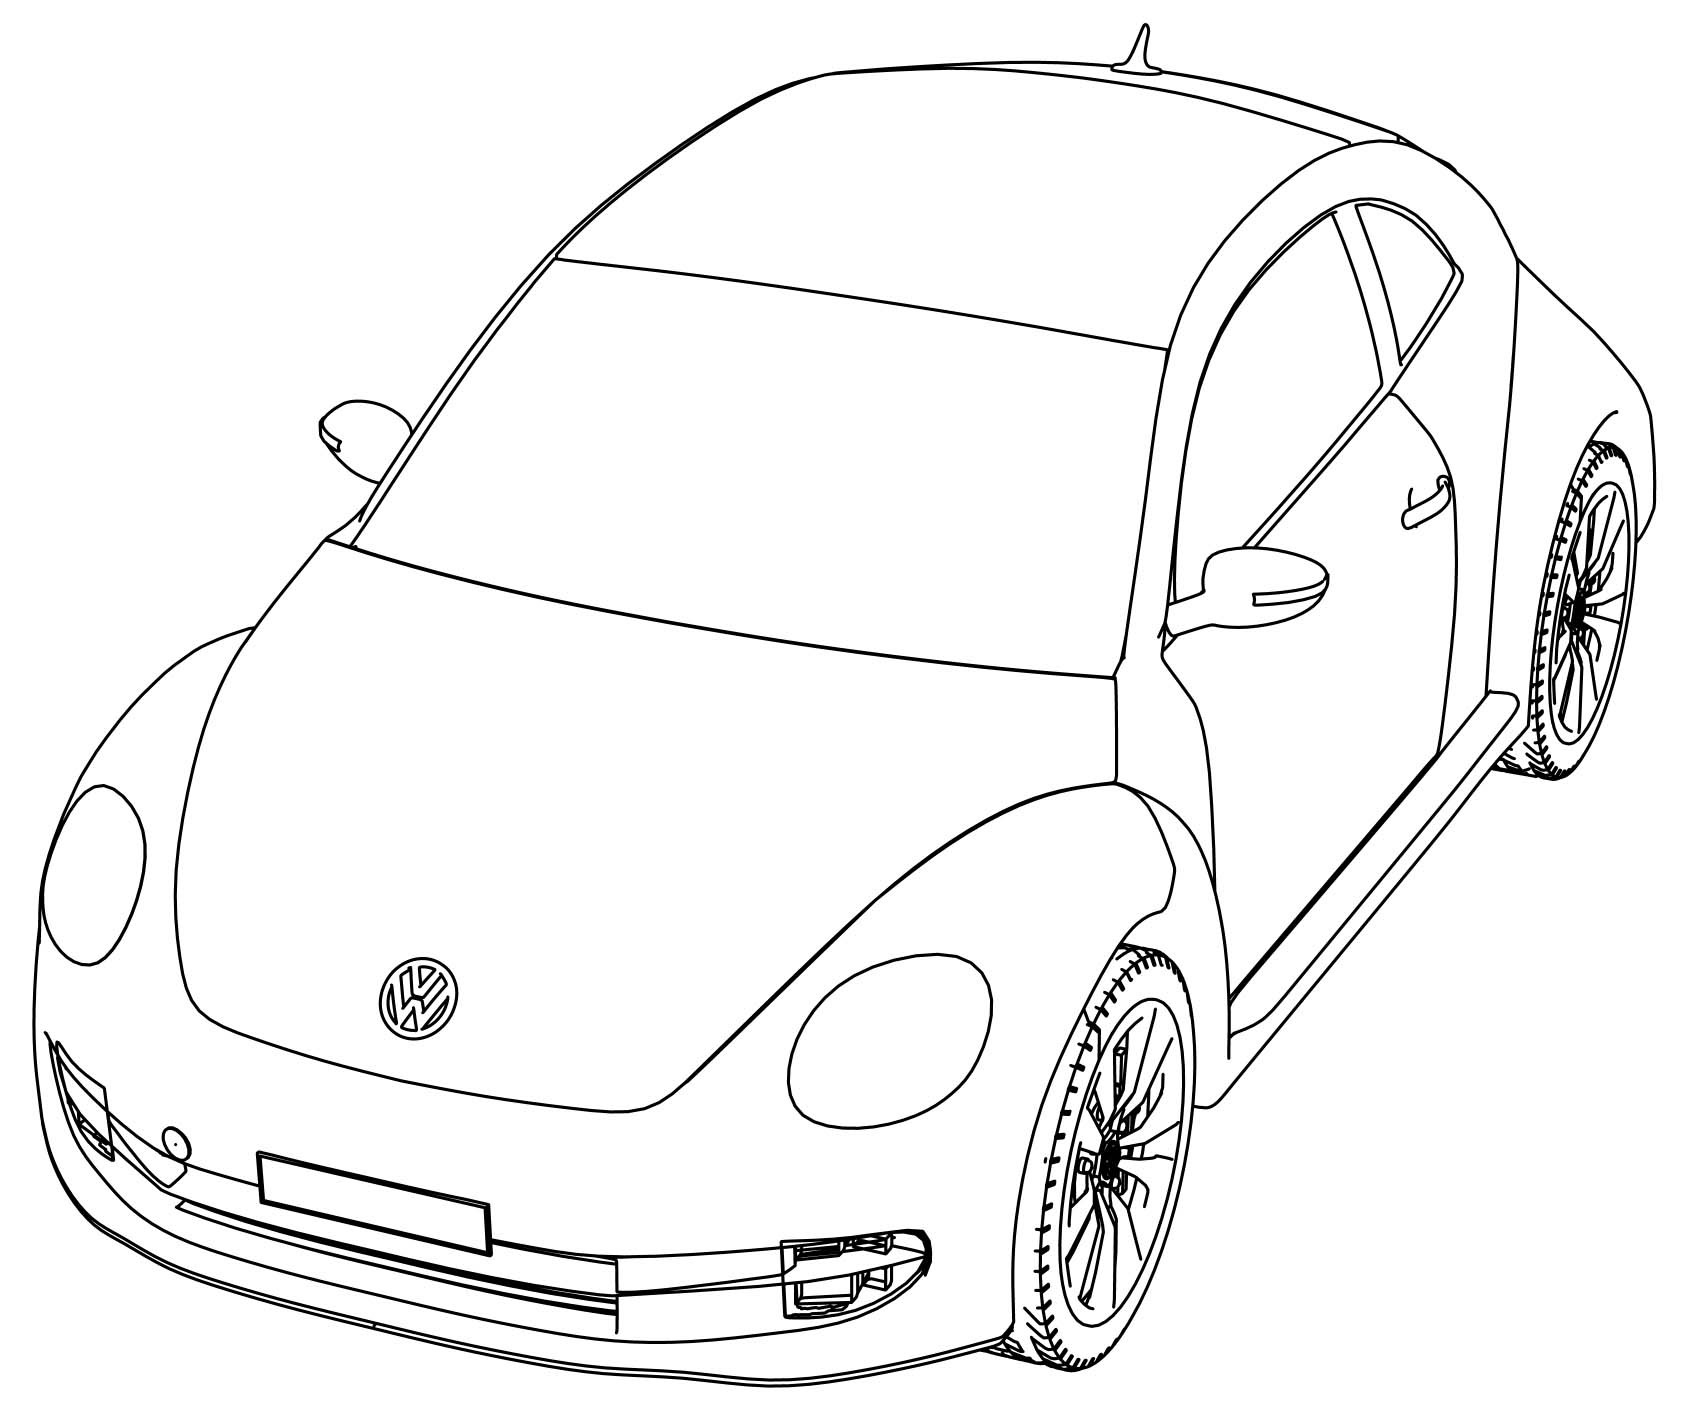 Vw Beetle Coloring Pages to Print 10n - Free Download